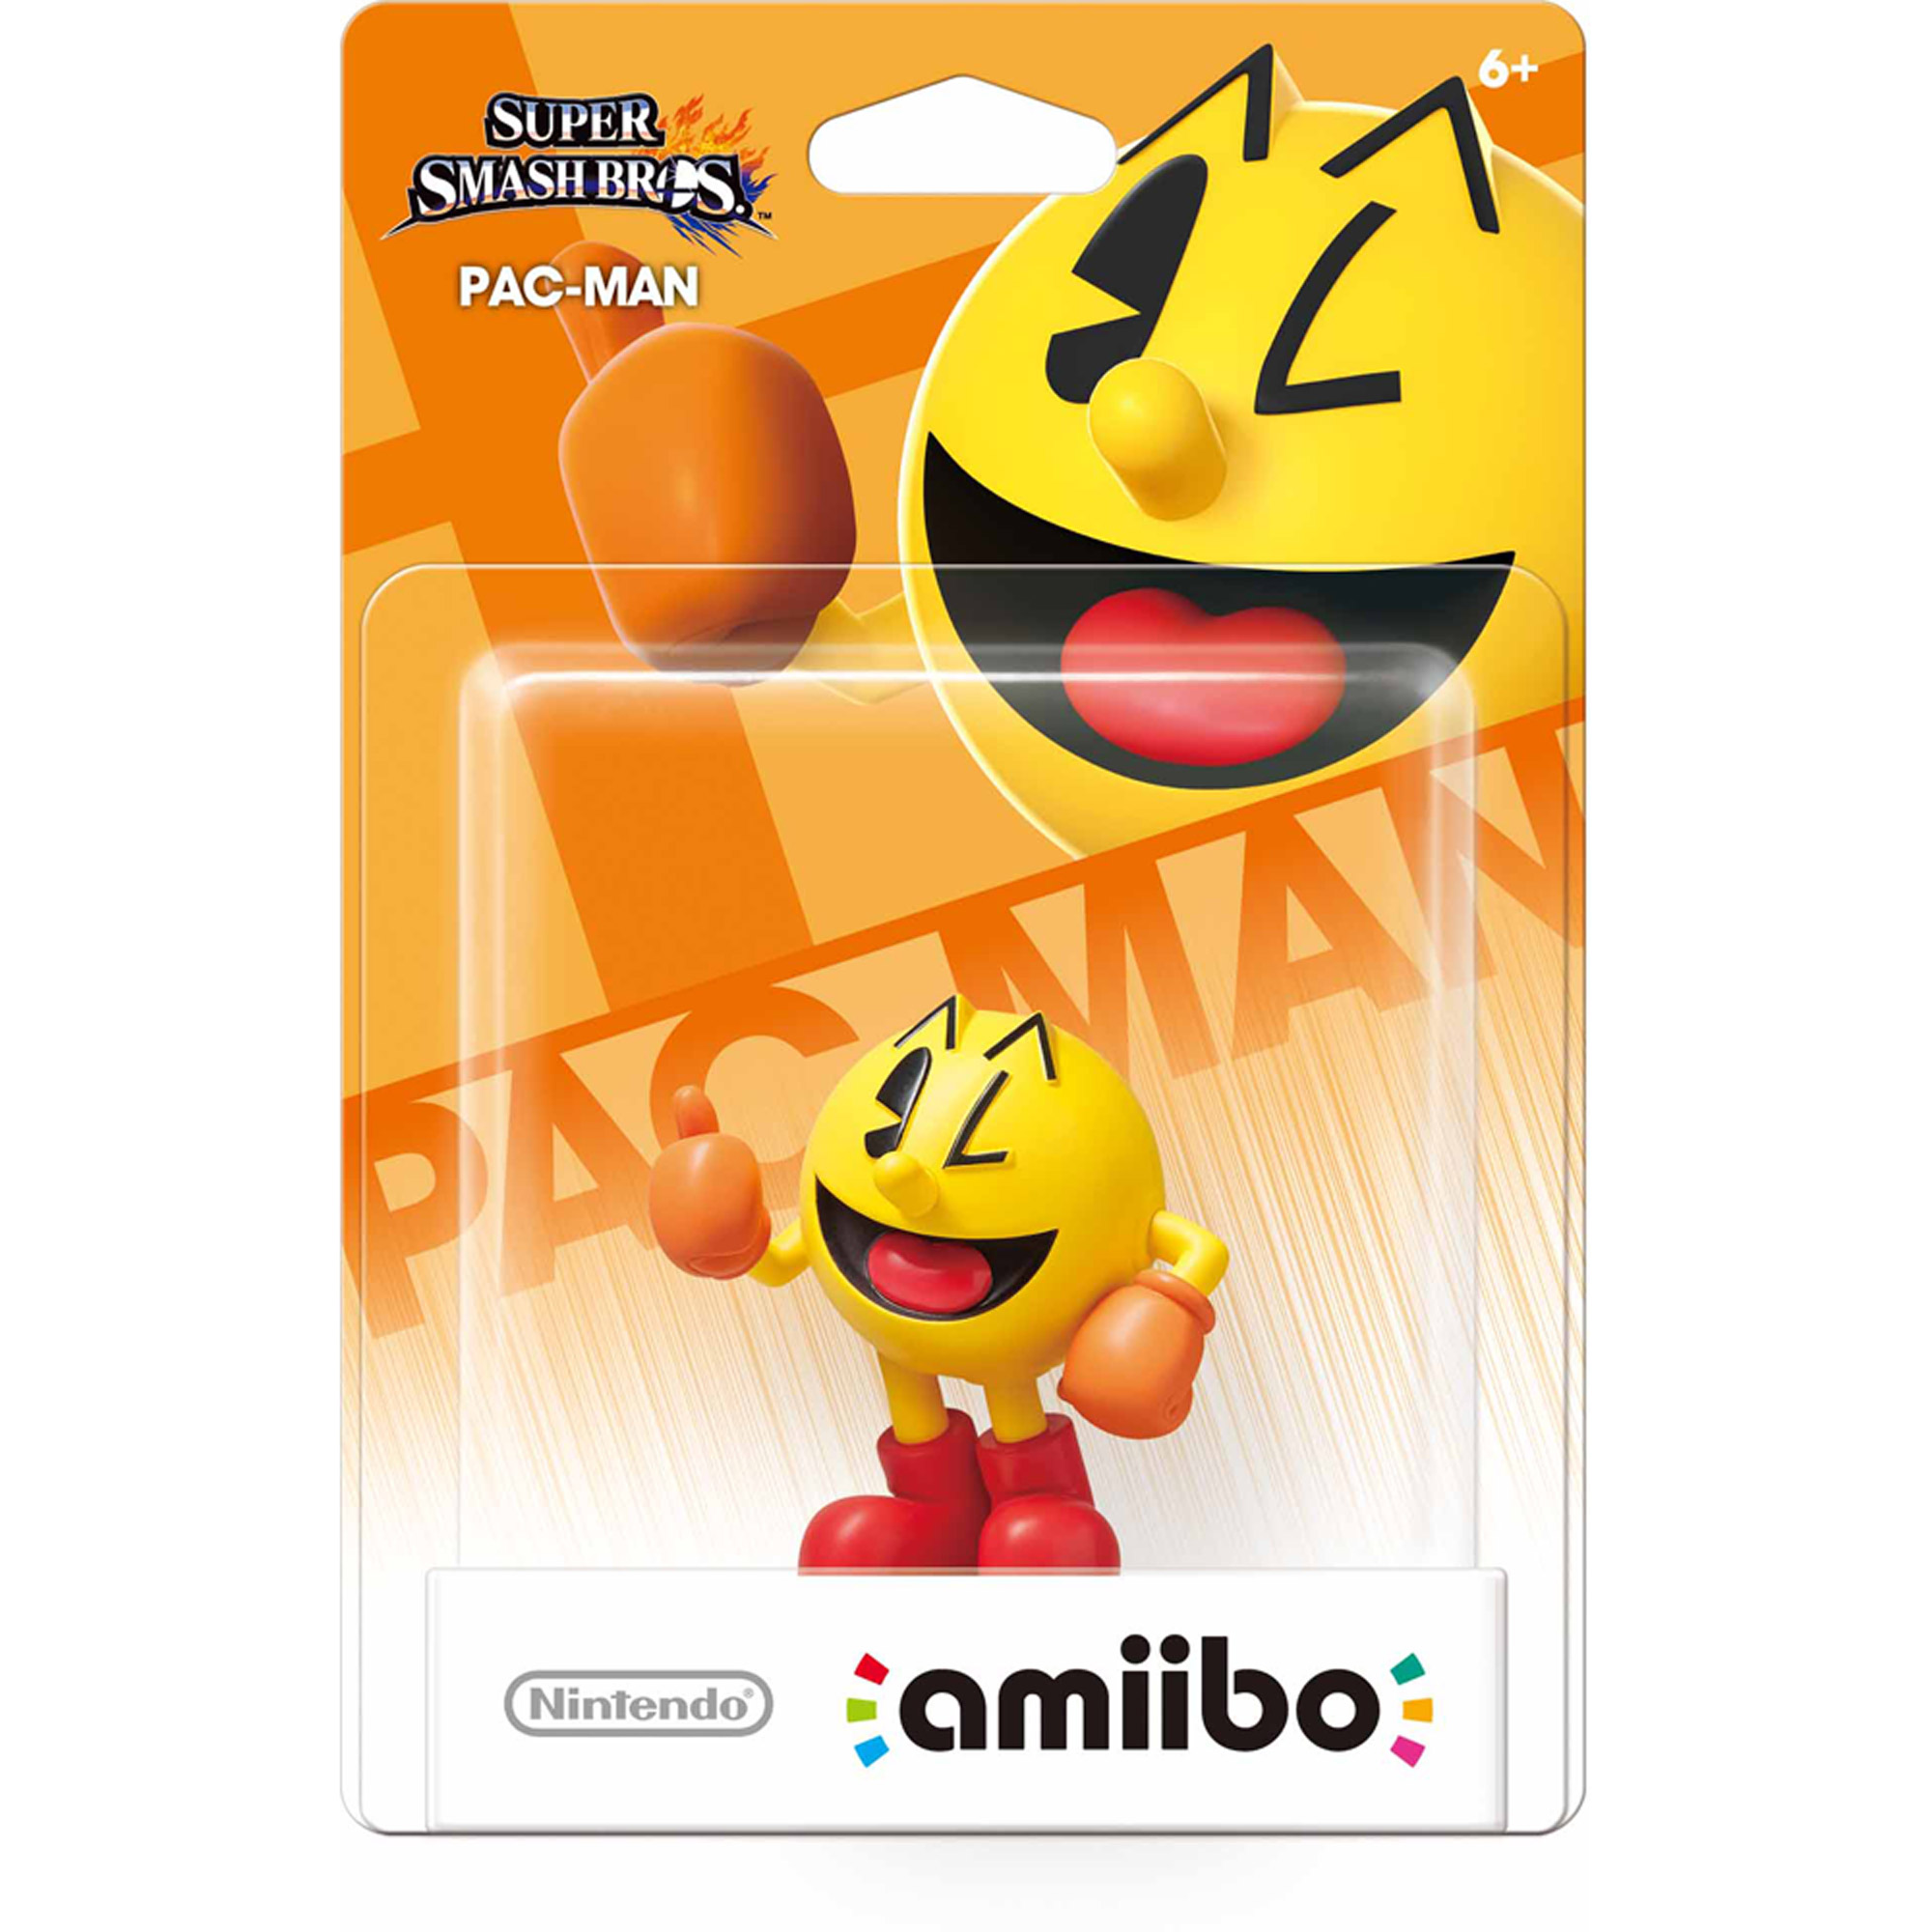 Nintendo Smash Bros. Series amiibo, Pac-Man by Nintendo